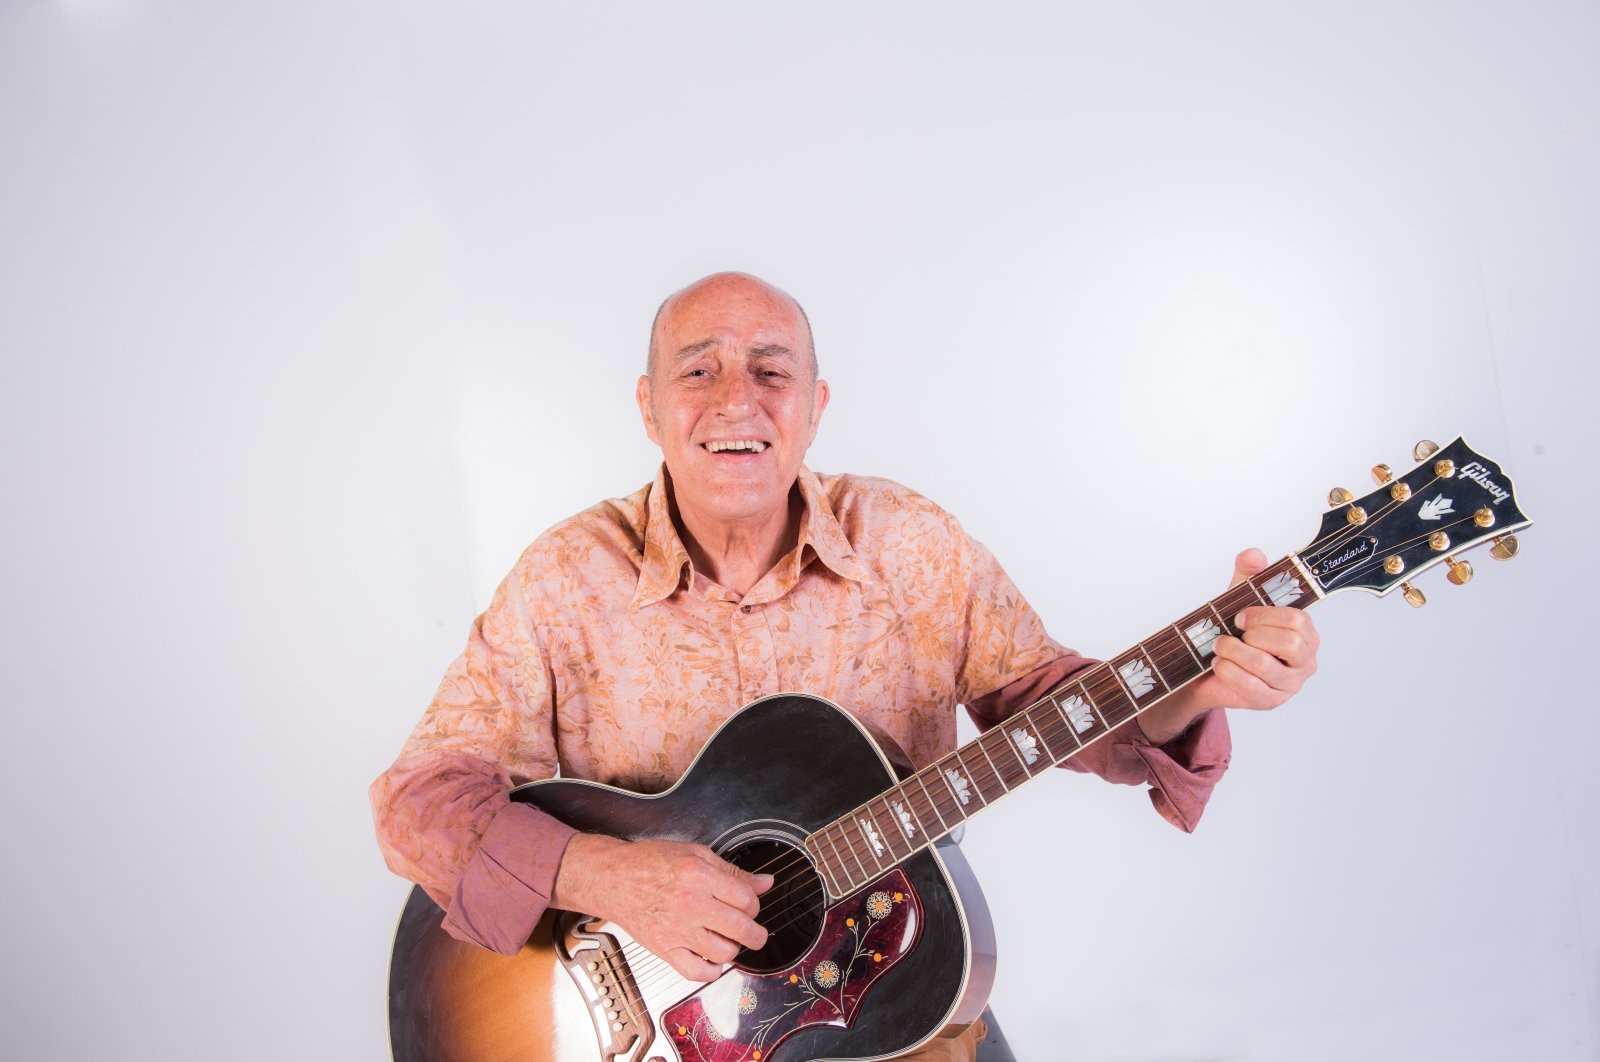 Fuat Güner poses with his guitar in this undated photo. (Photo by Murat Şengül)